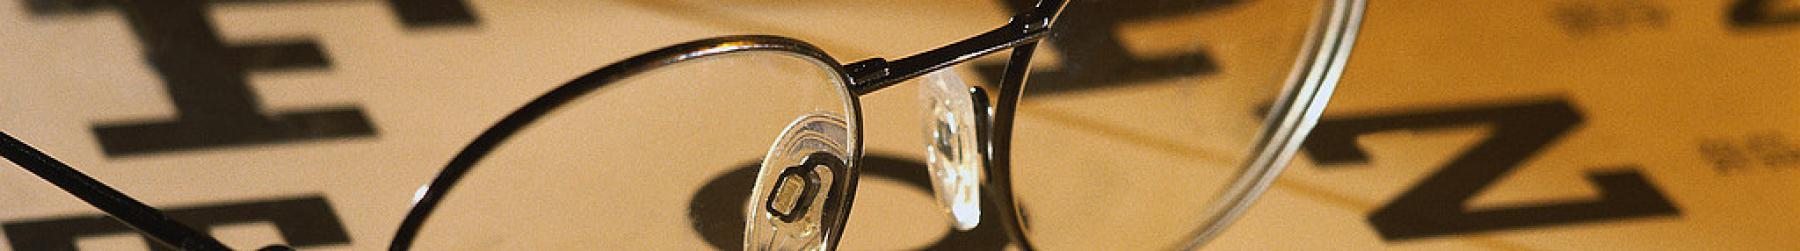 A pair of wire-frame glasses rests on an eye chart.